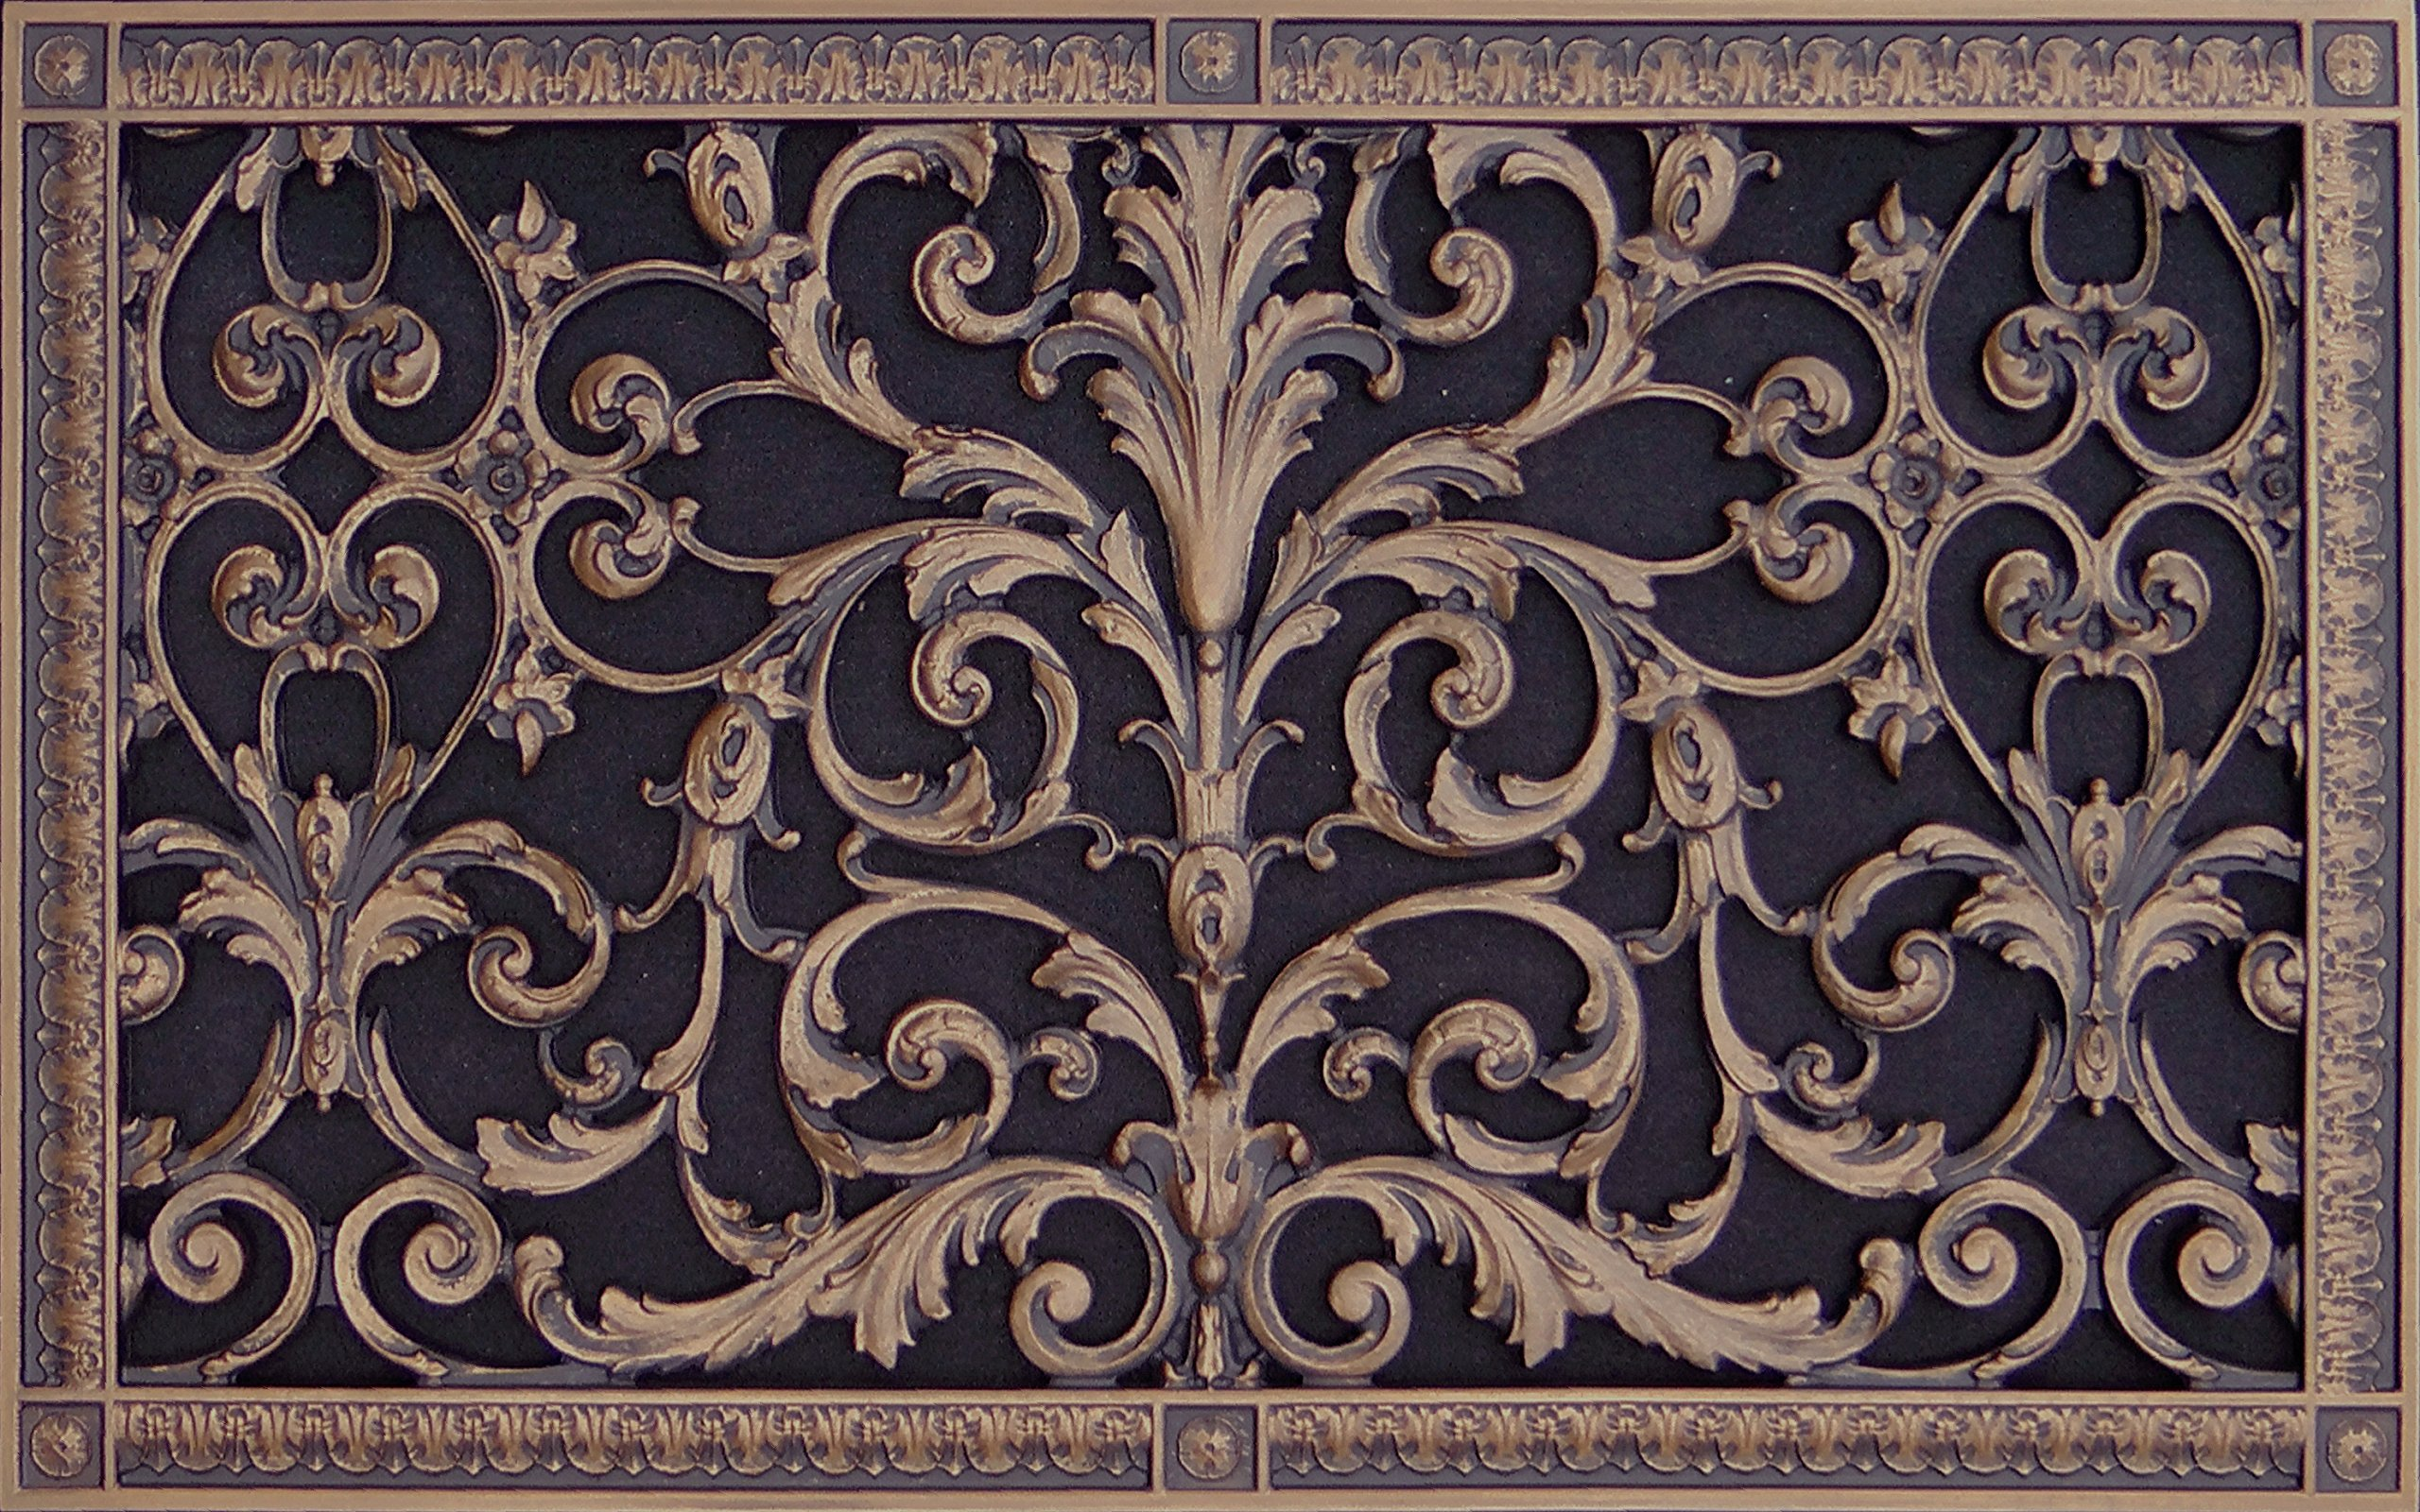 "Decorative Vent Cover, Grille, made of Urethane Resin in Louis XIV, French style fits over a 24"" x 14"", Total size, 26"" by 16"", for wall & ceiling installation only. (not for floors) (Rubbed Bronze)"